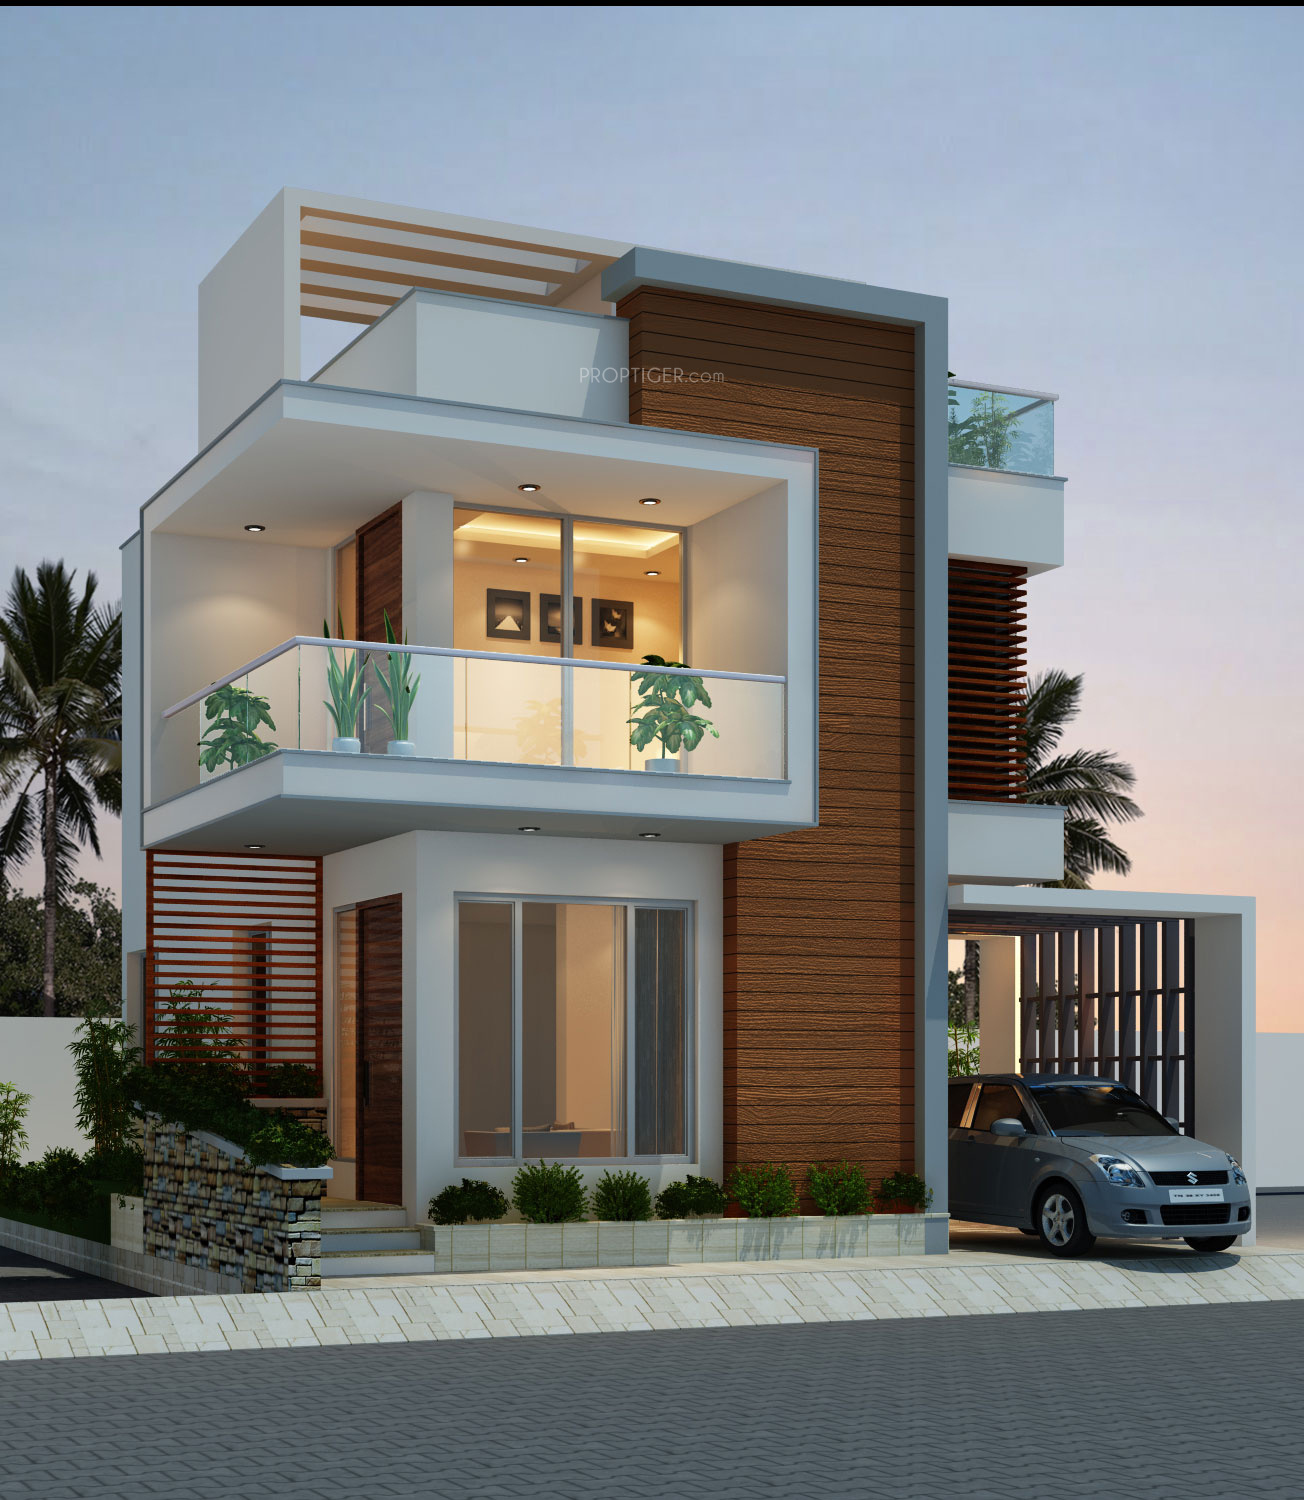 Modern Home Elevation Designs: Headway Fortune Residency Villa In Perungalathur, Chennai